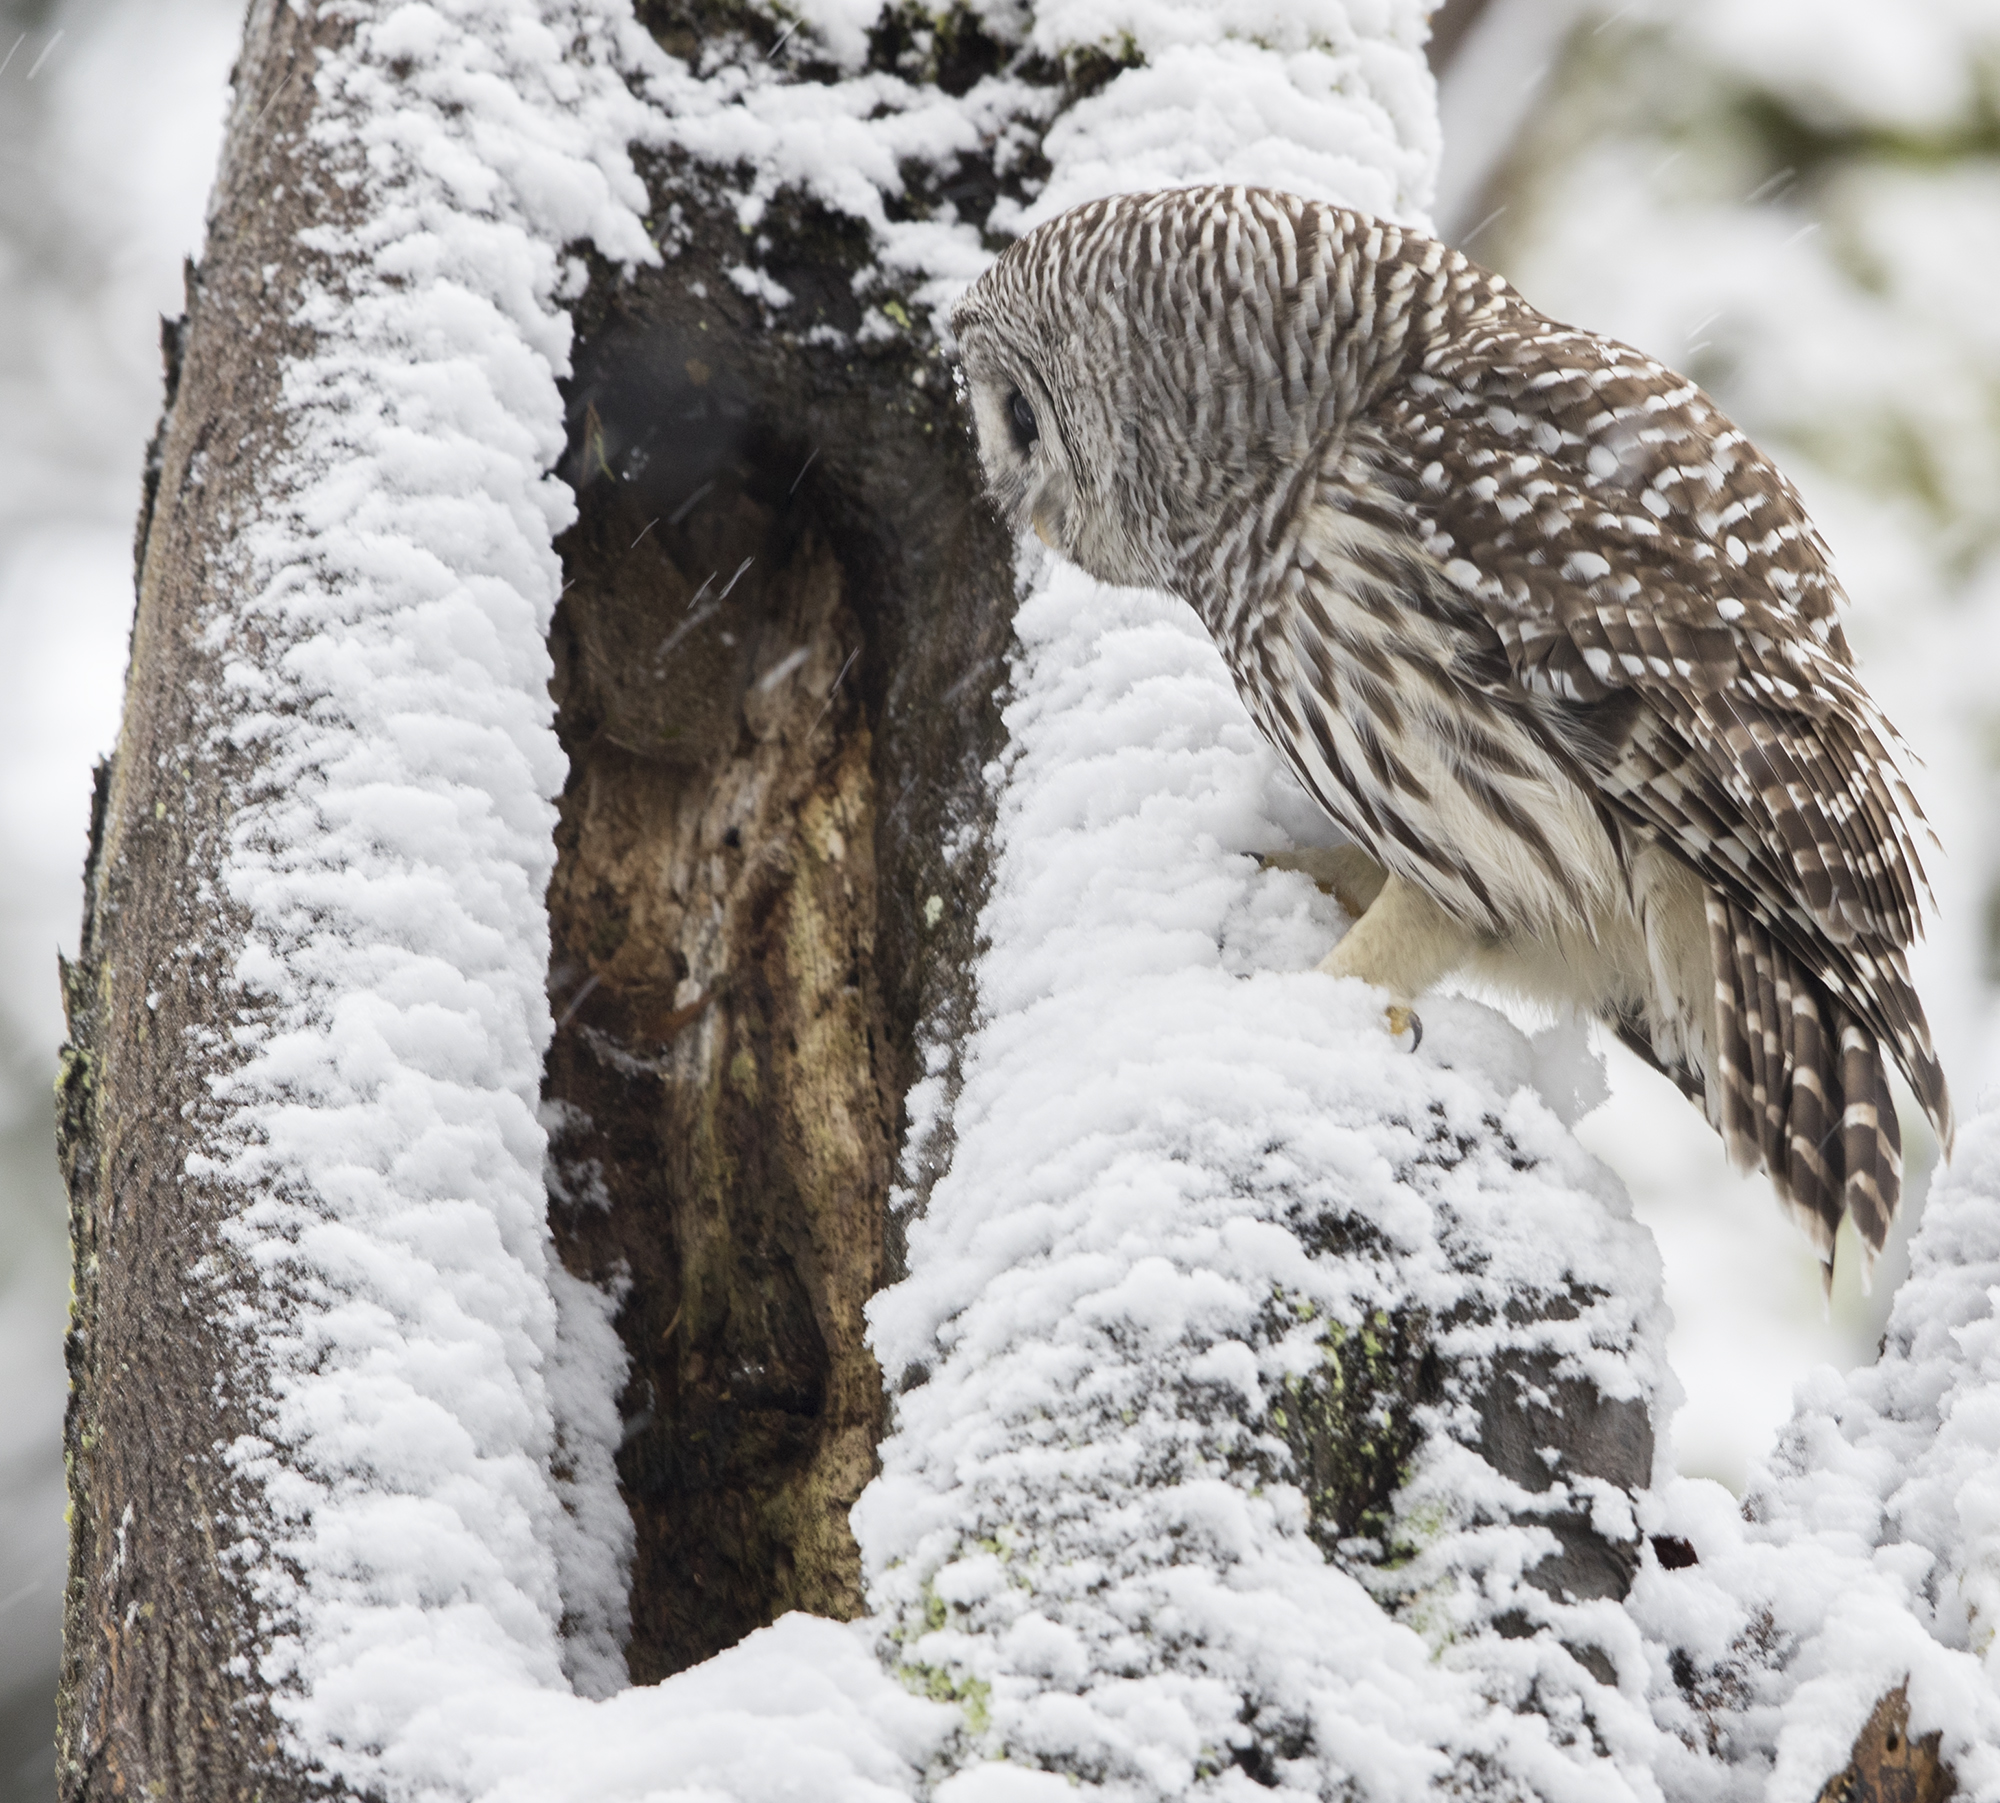 searching for owls in discovery park with wildlife photographer